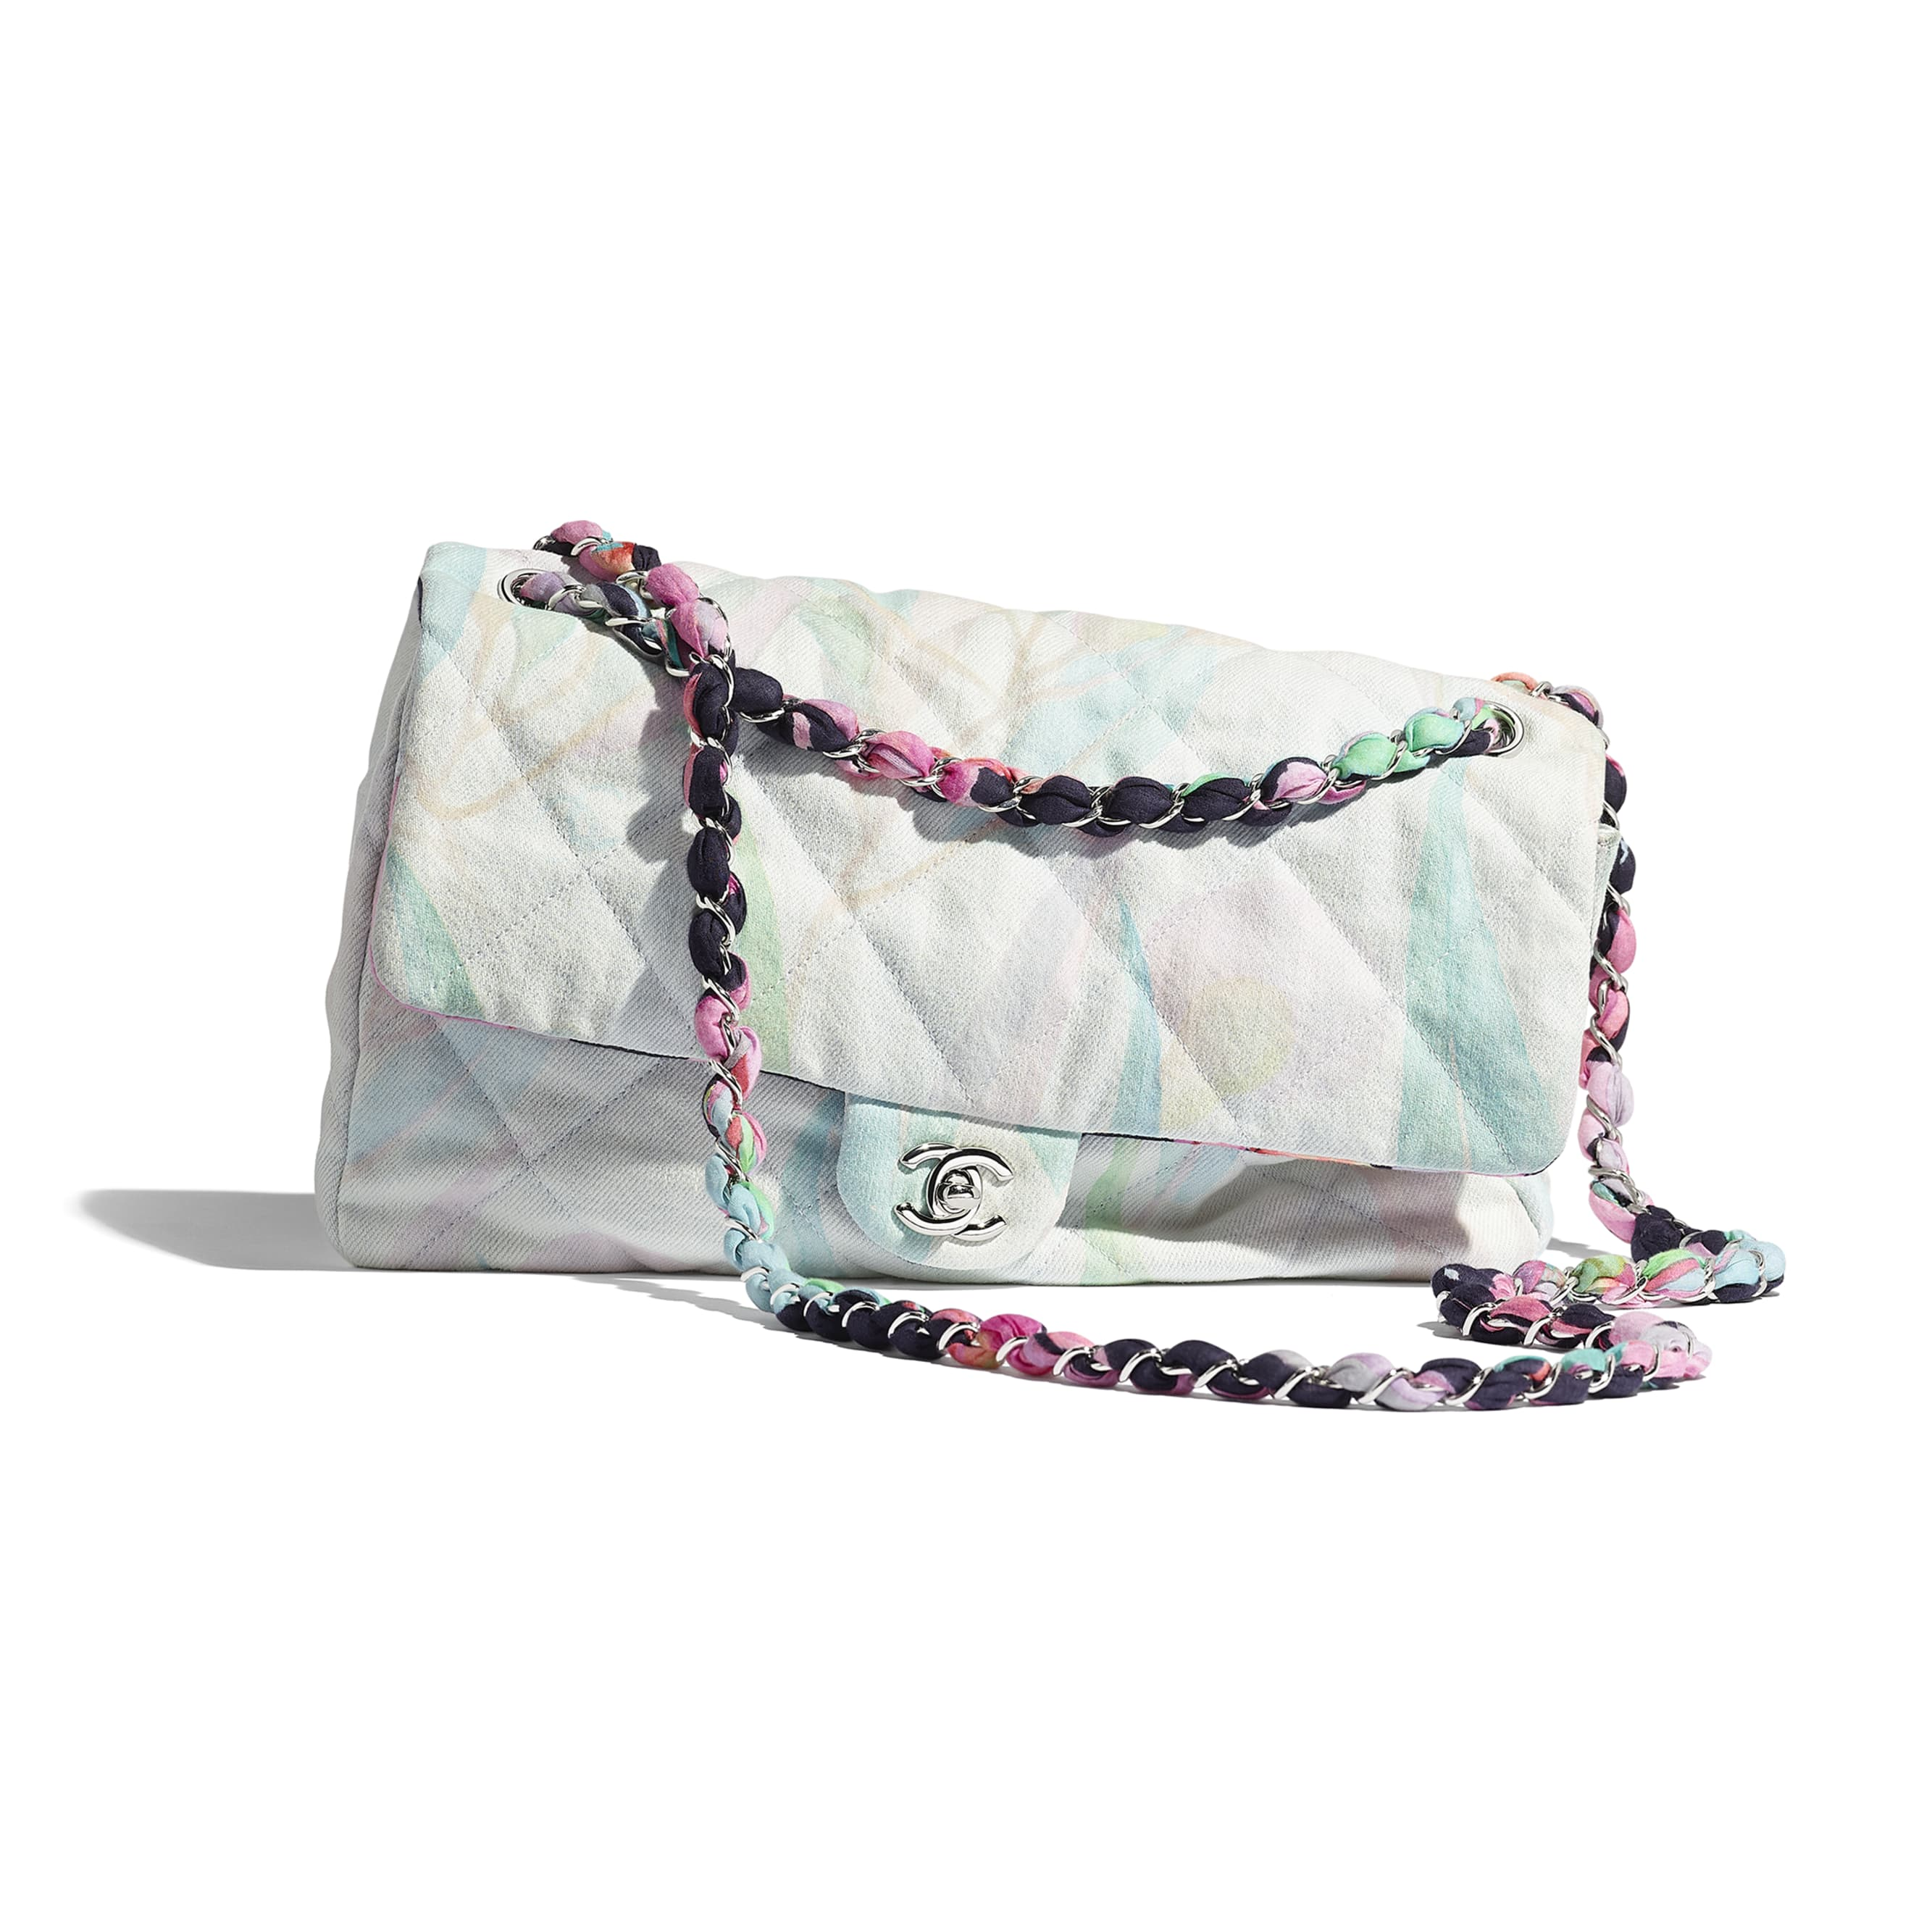 Flap Bag - Multicolour - Denim & Silver-Tone Metal - Extra view - see standard sized version